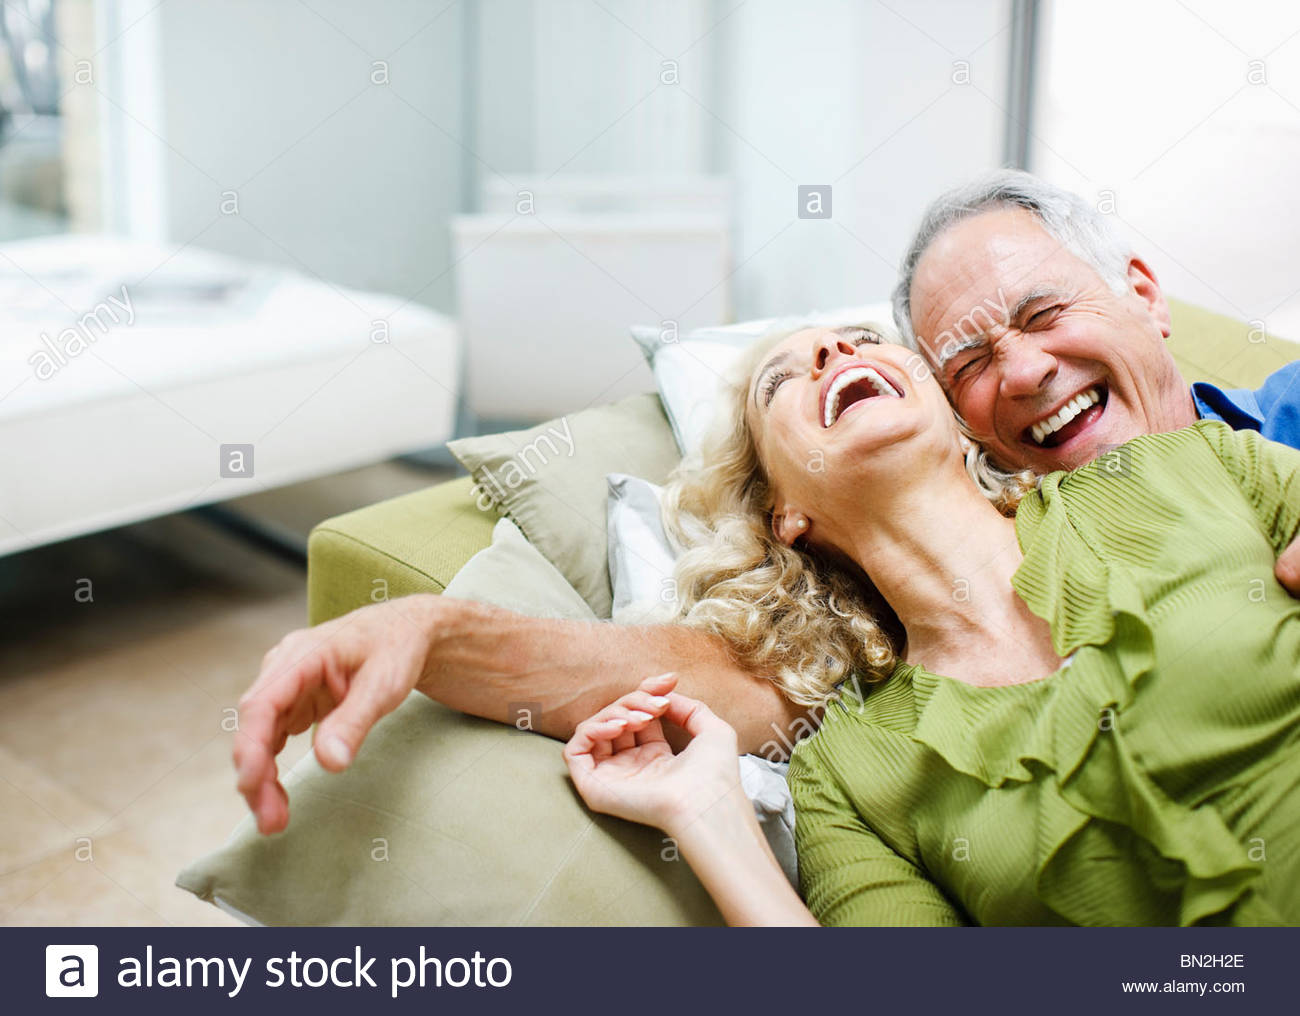 Couple laying on sofa together Photo Stock